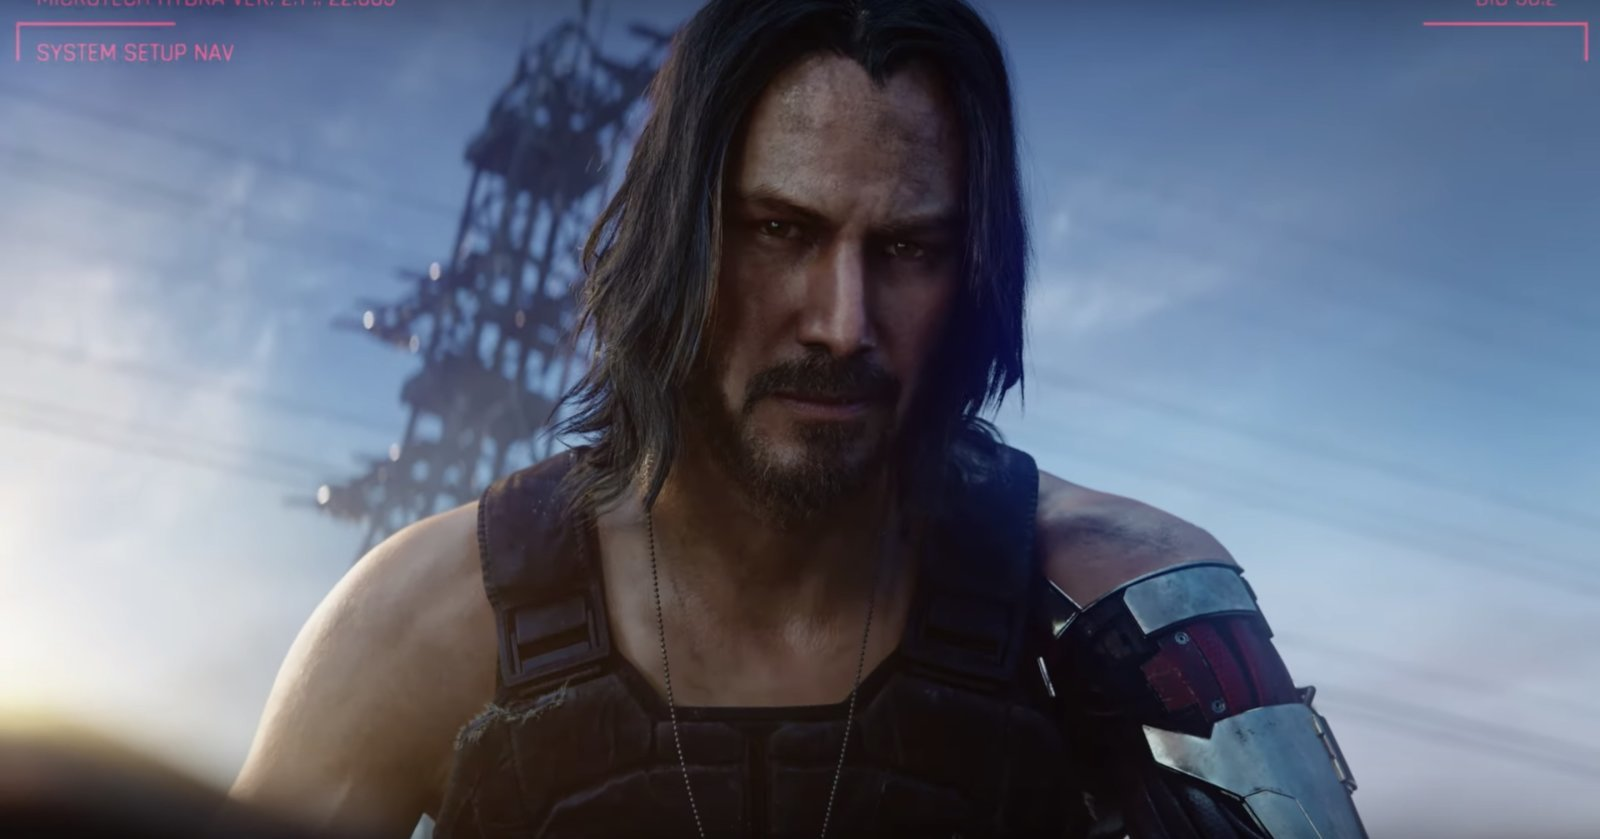 cyberpunk-2077-keanu-reeves-bande-annonce